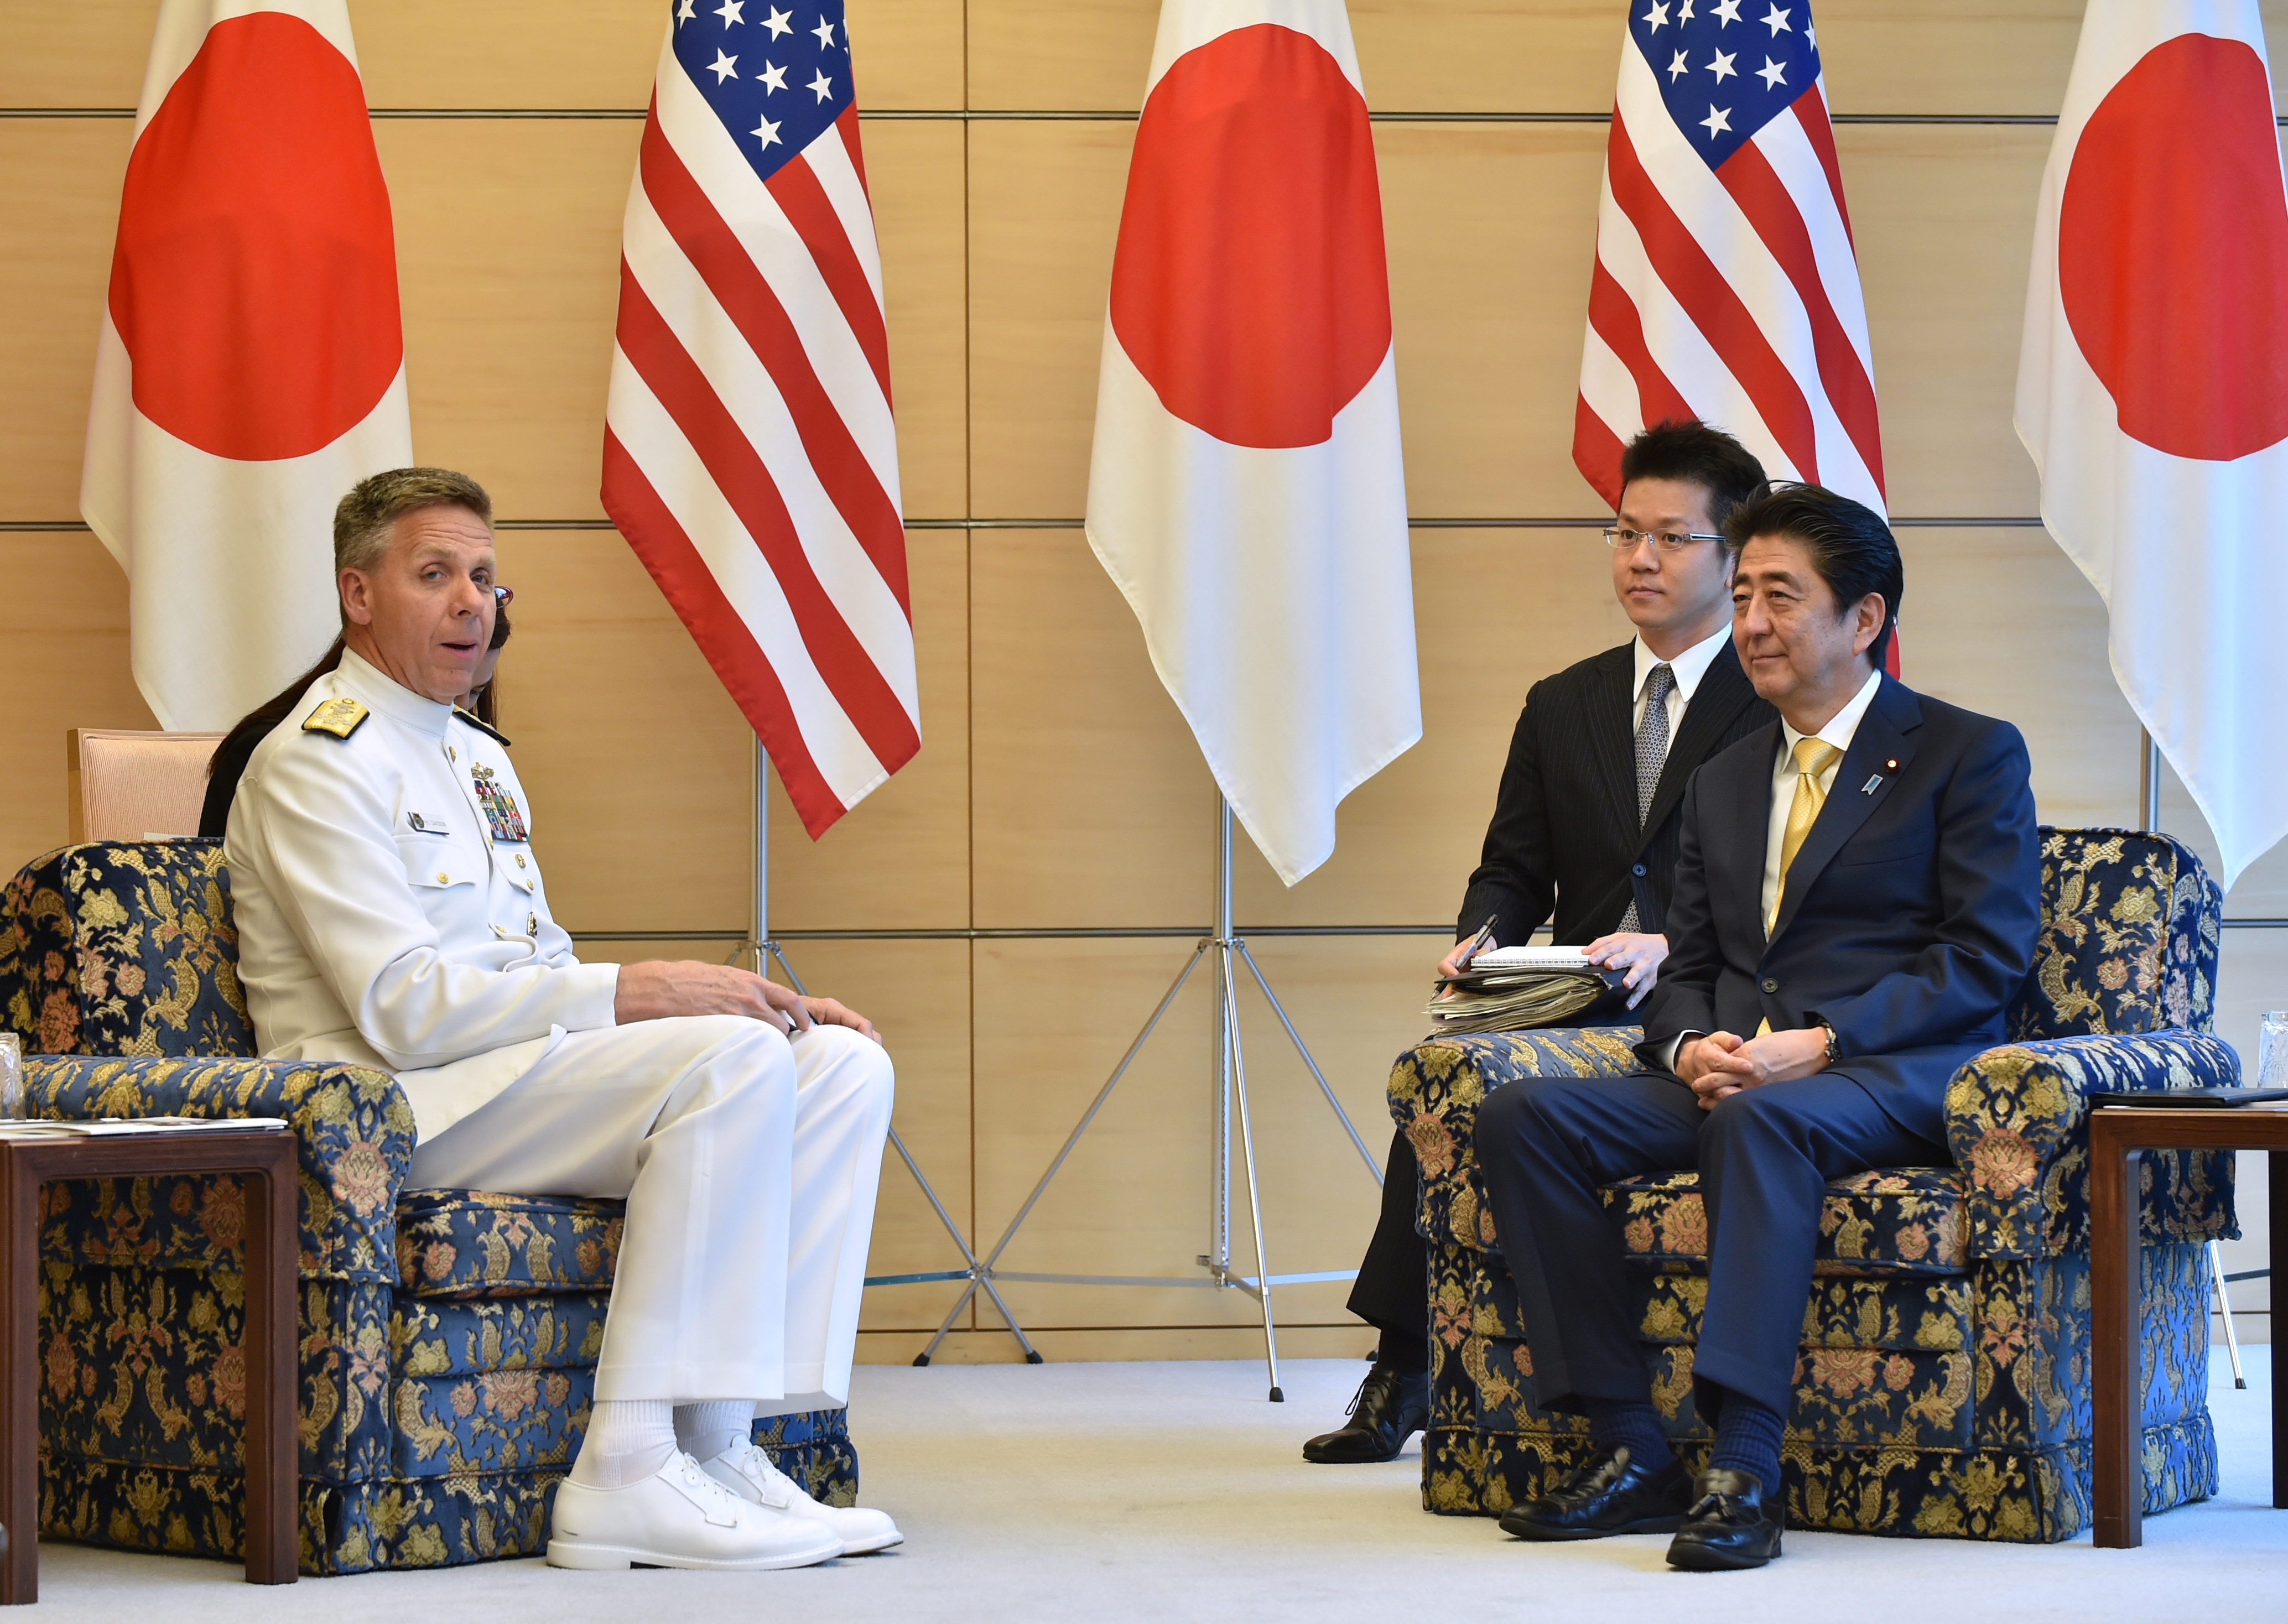 FILE PHOTO: Admiral Philip S. Davidson (L), Commander of U.S. Indo-Pacific Command, meets with Japan's Prime Minister Shinzo Abe at Abe's office in Tokyo, Japan June 21, 2018. Kazuhiro Nogi/Pool via Reuters